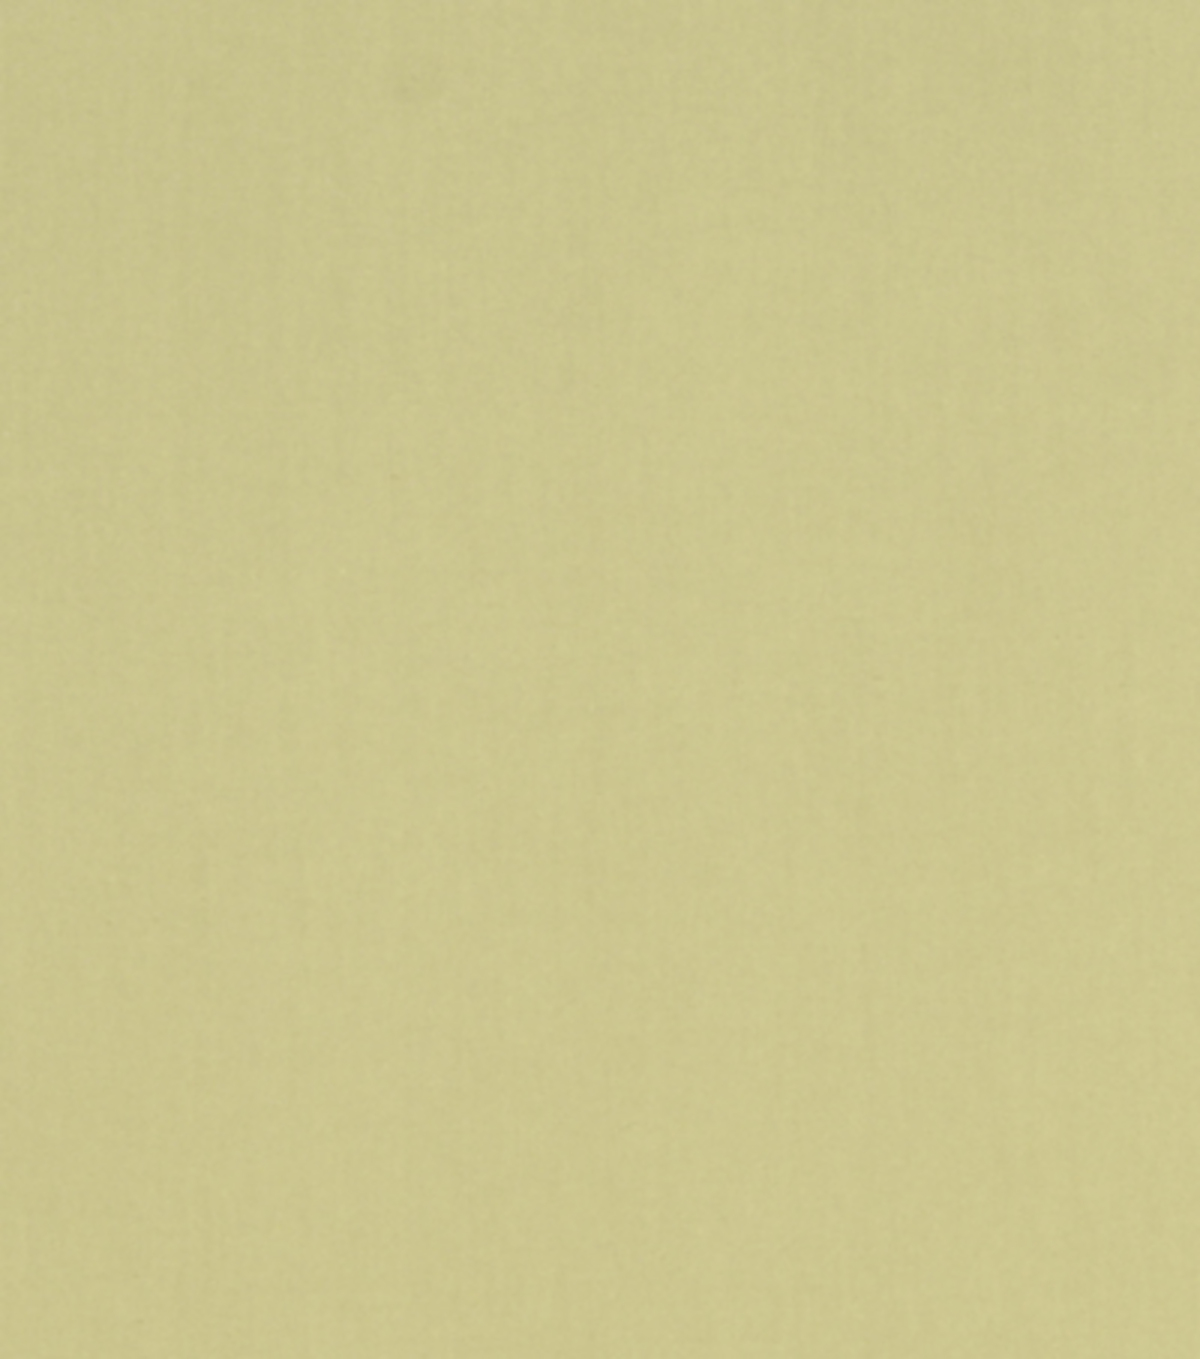 Home Decor 8\u0022x8\u0022 Fabric Swatch-Covington Spinnaker 108 Wheat